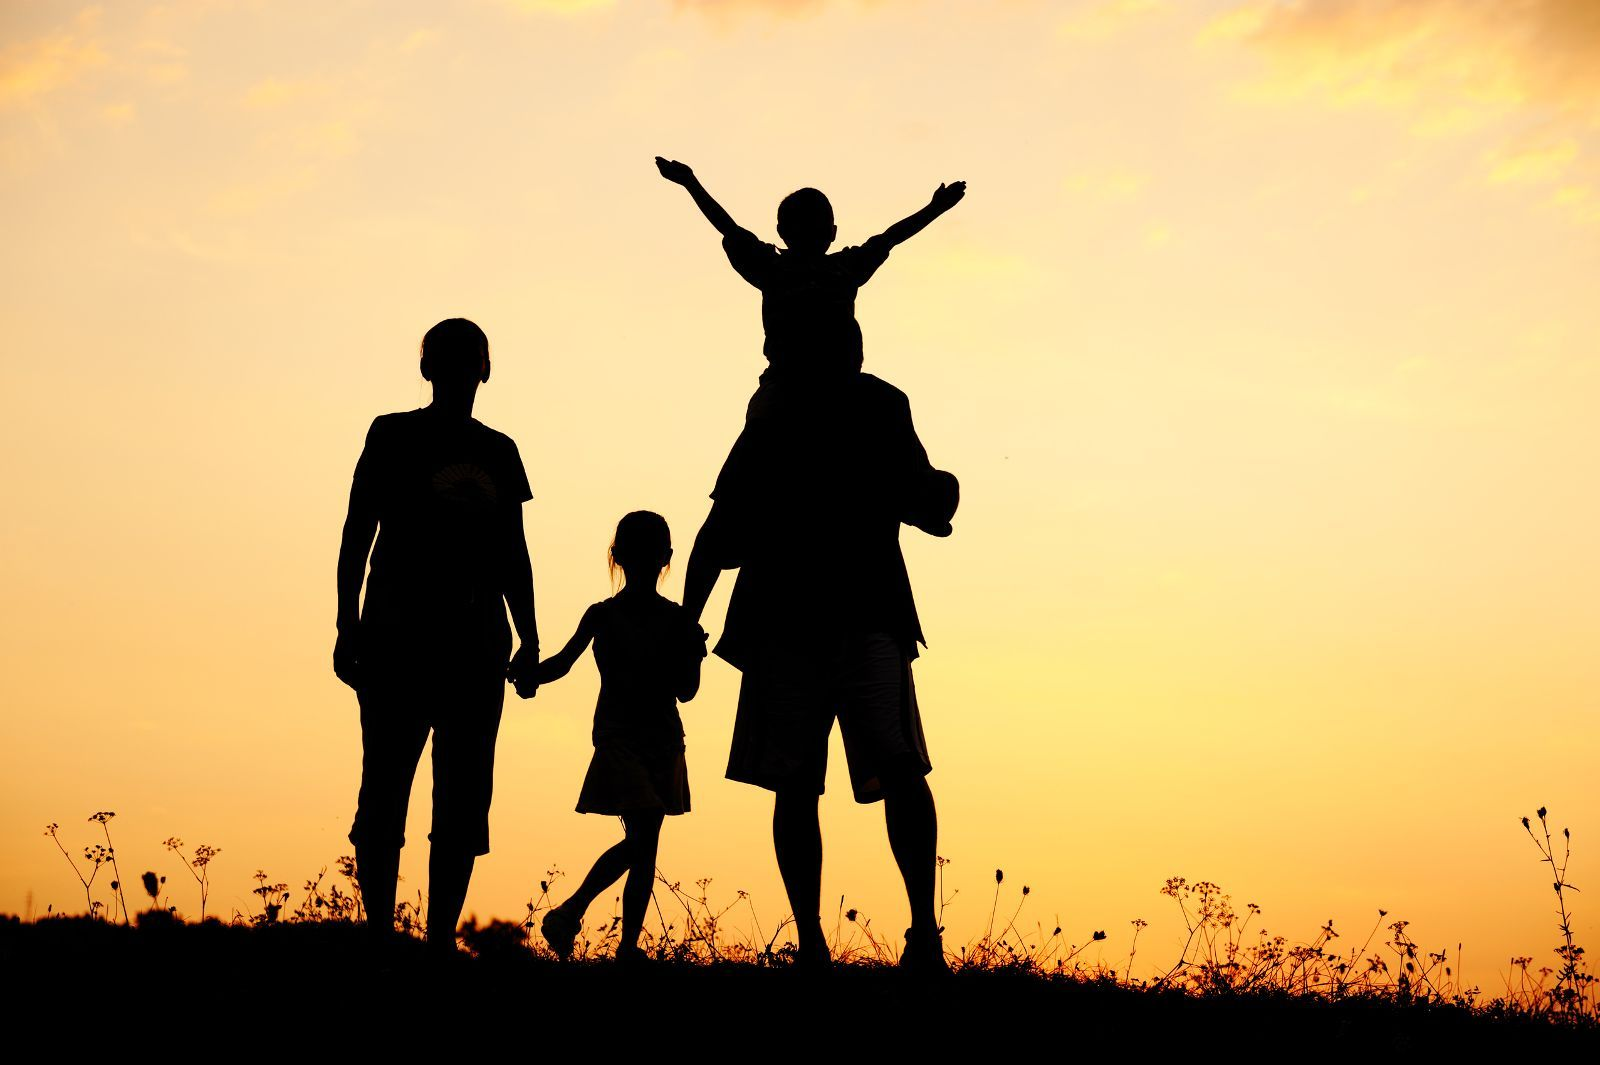 Texas Adoption Law | Parenting, Effects of bullying, Happy ...